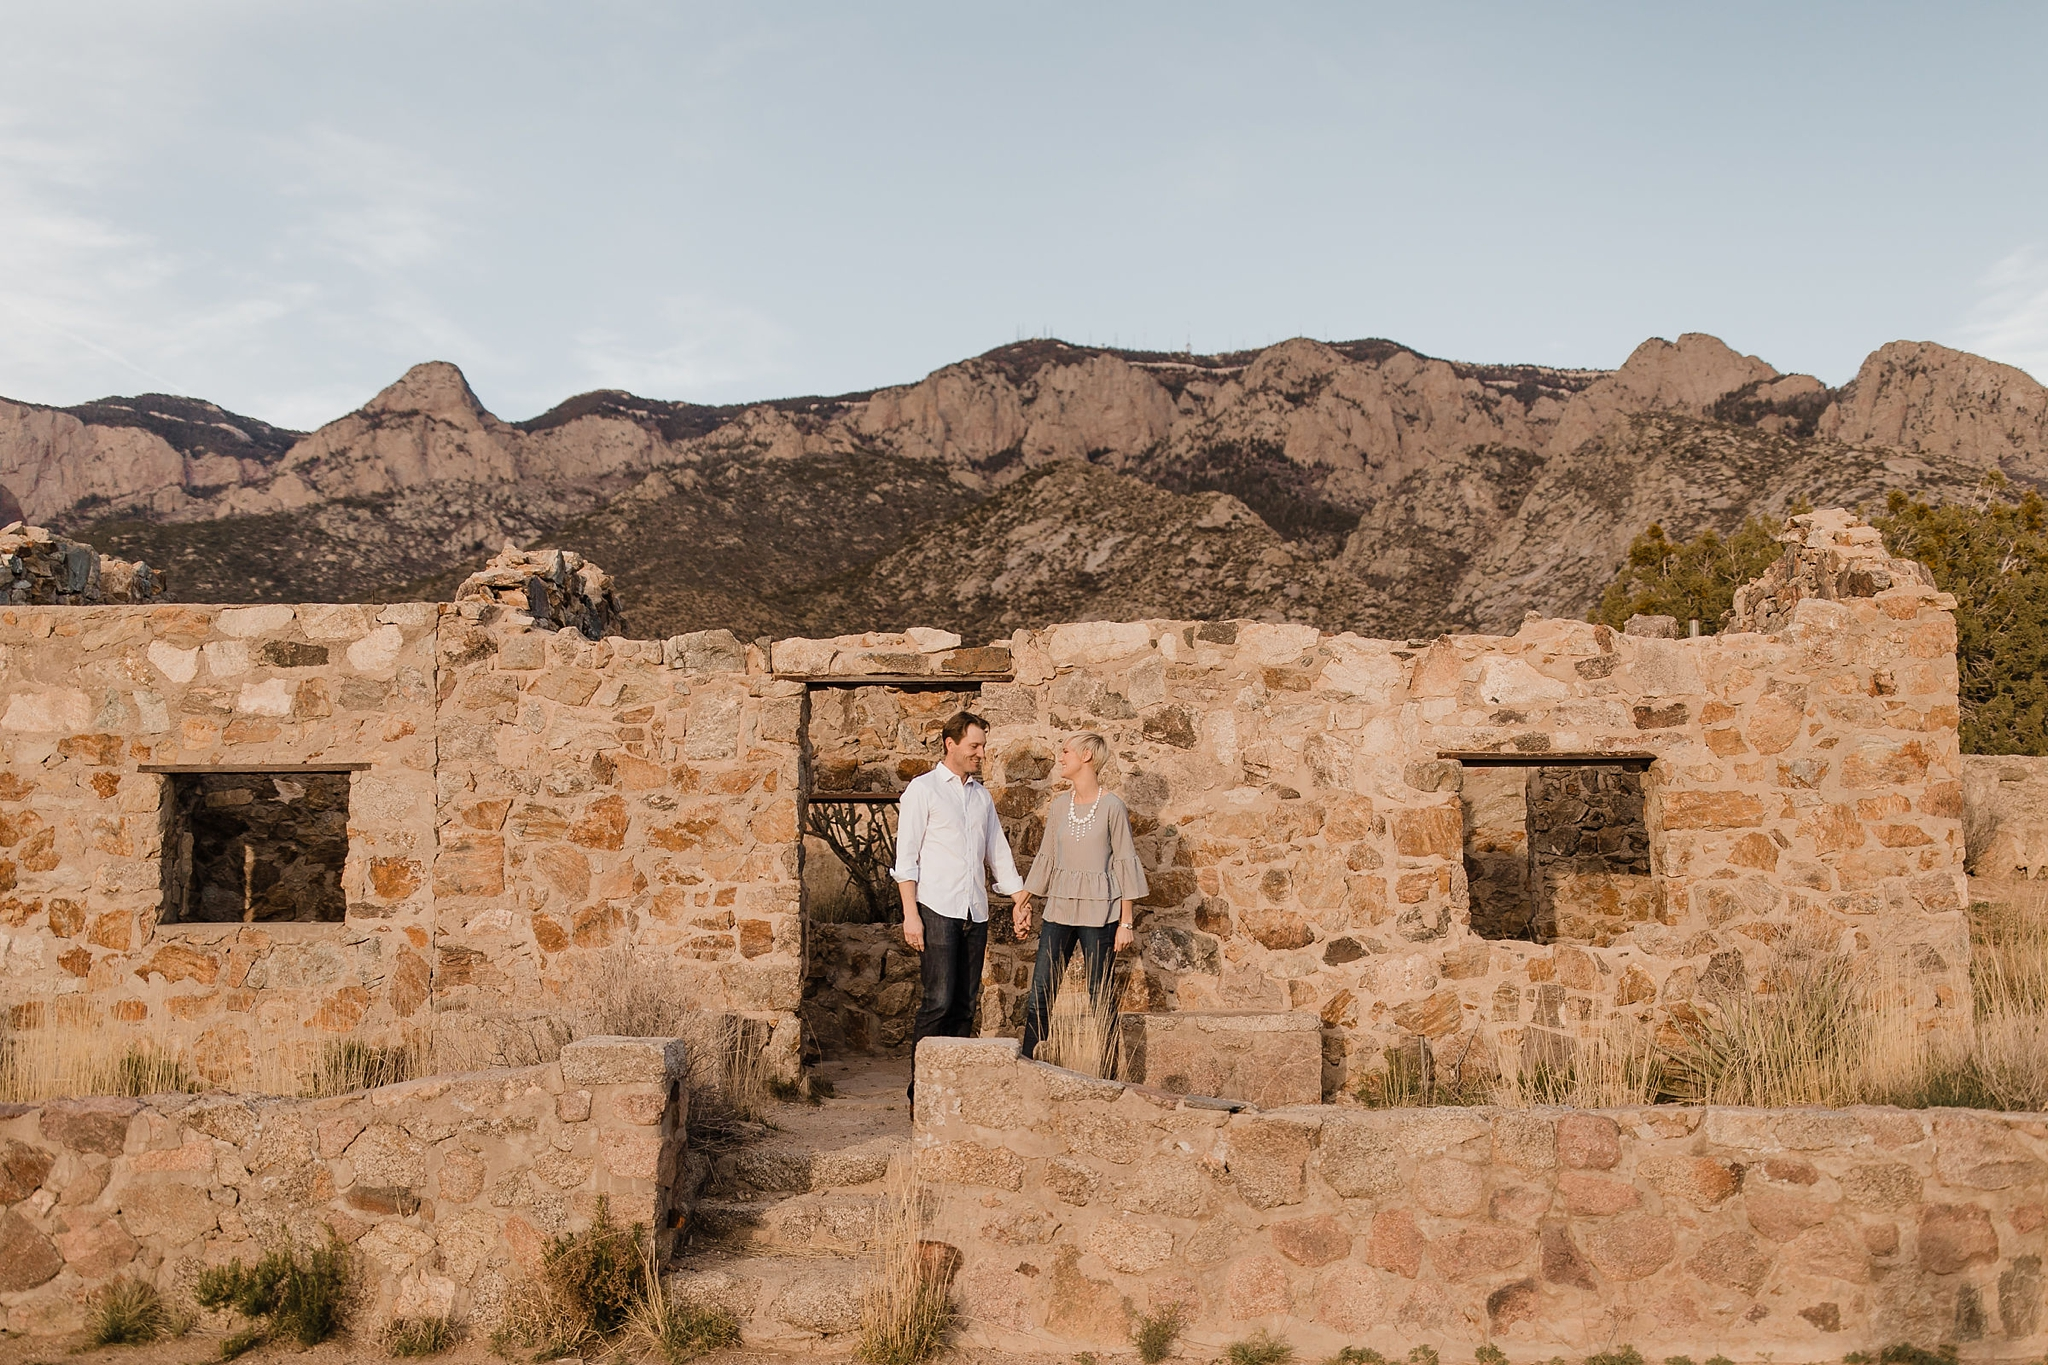 Alicia+lucia+photography+-+albuquerque+wedding+photographer+-+santa+fe+wedding+photography+-+new+mexico+wedding+photographer+-+new+mexico+wedding+-+engagement+-+new+mexico+engagement+-+desert+engagement+-+albuquerque+engagement_0008.jpg